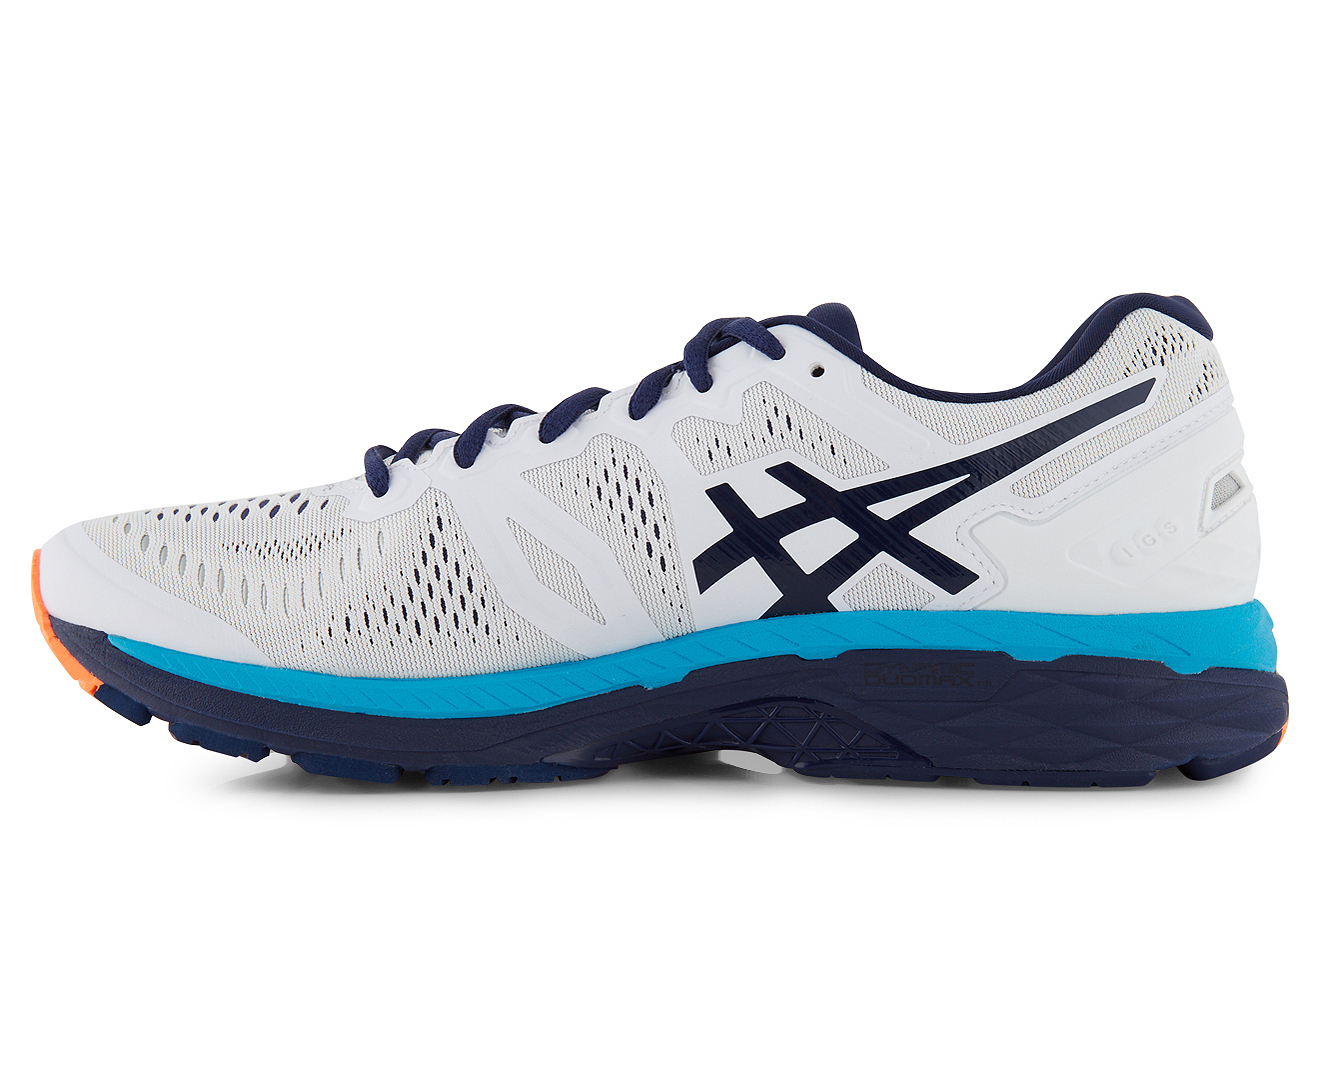 Sneakers T646N-0149 Asics Men/'s Gel Kayano23 White-Indigo Blue Running Shoes